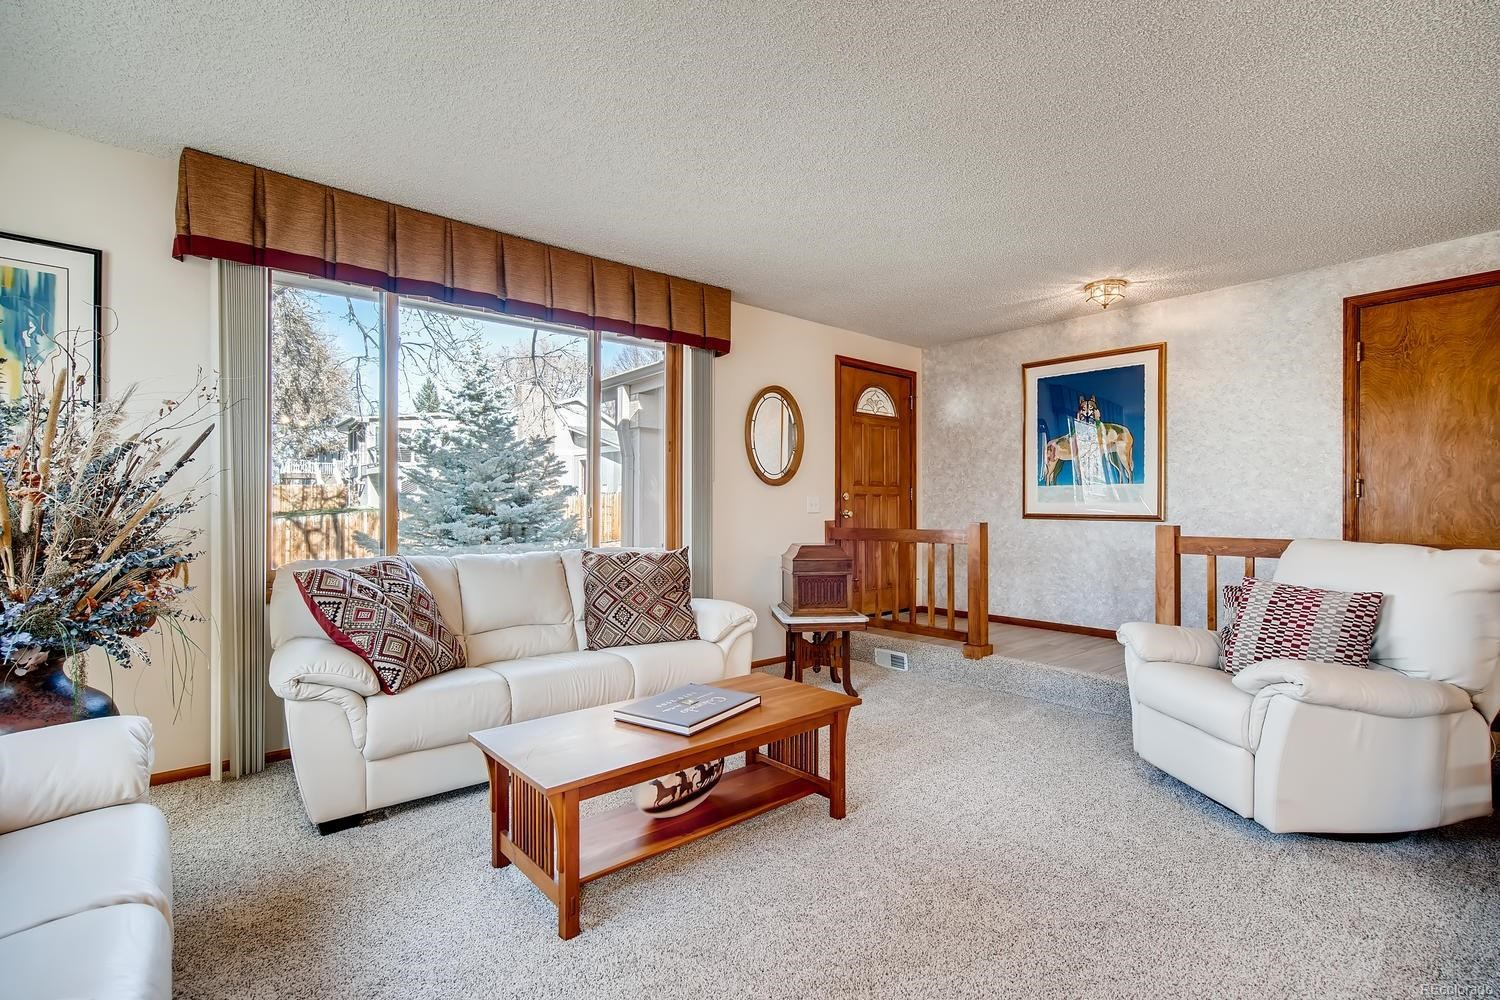 MLS# 2220629 - 5 - 4620 W 108th Place, Westminster, CO 80031